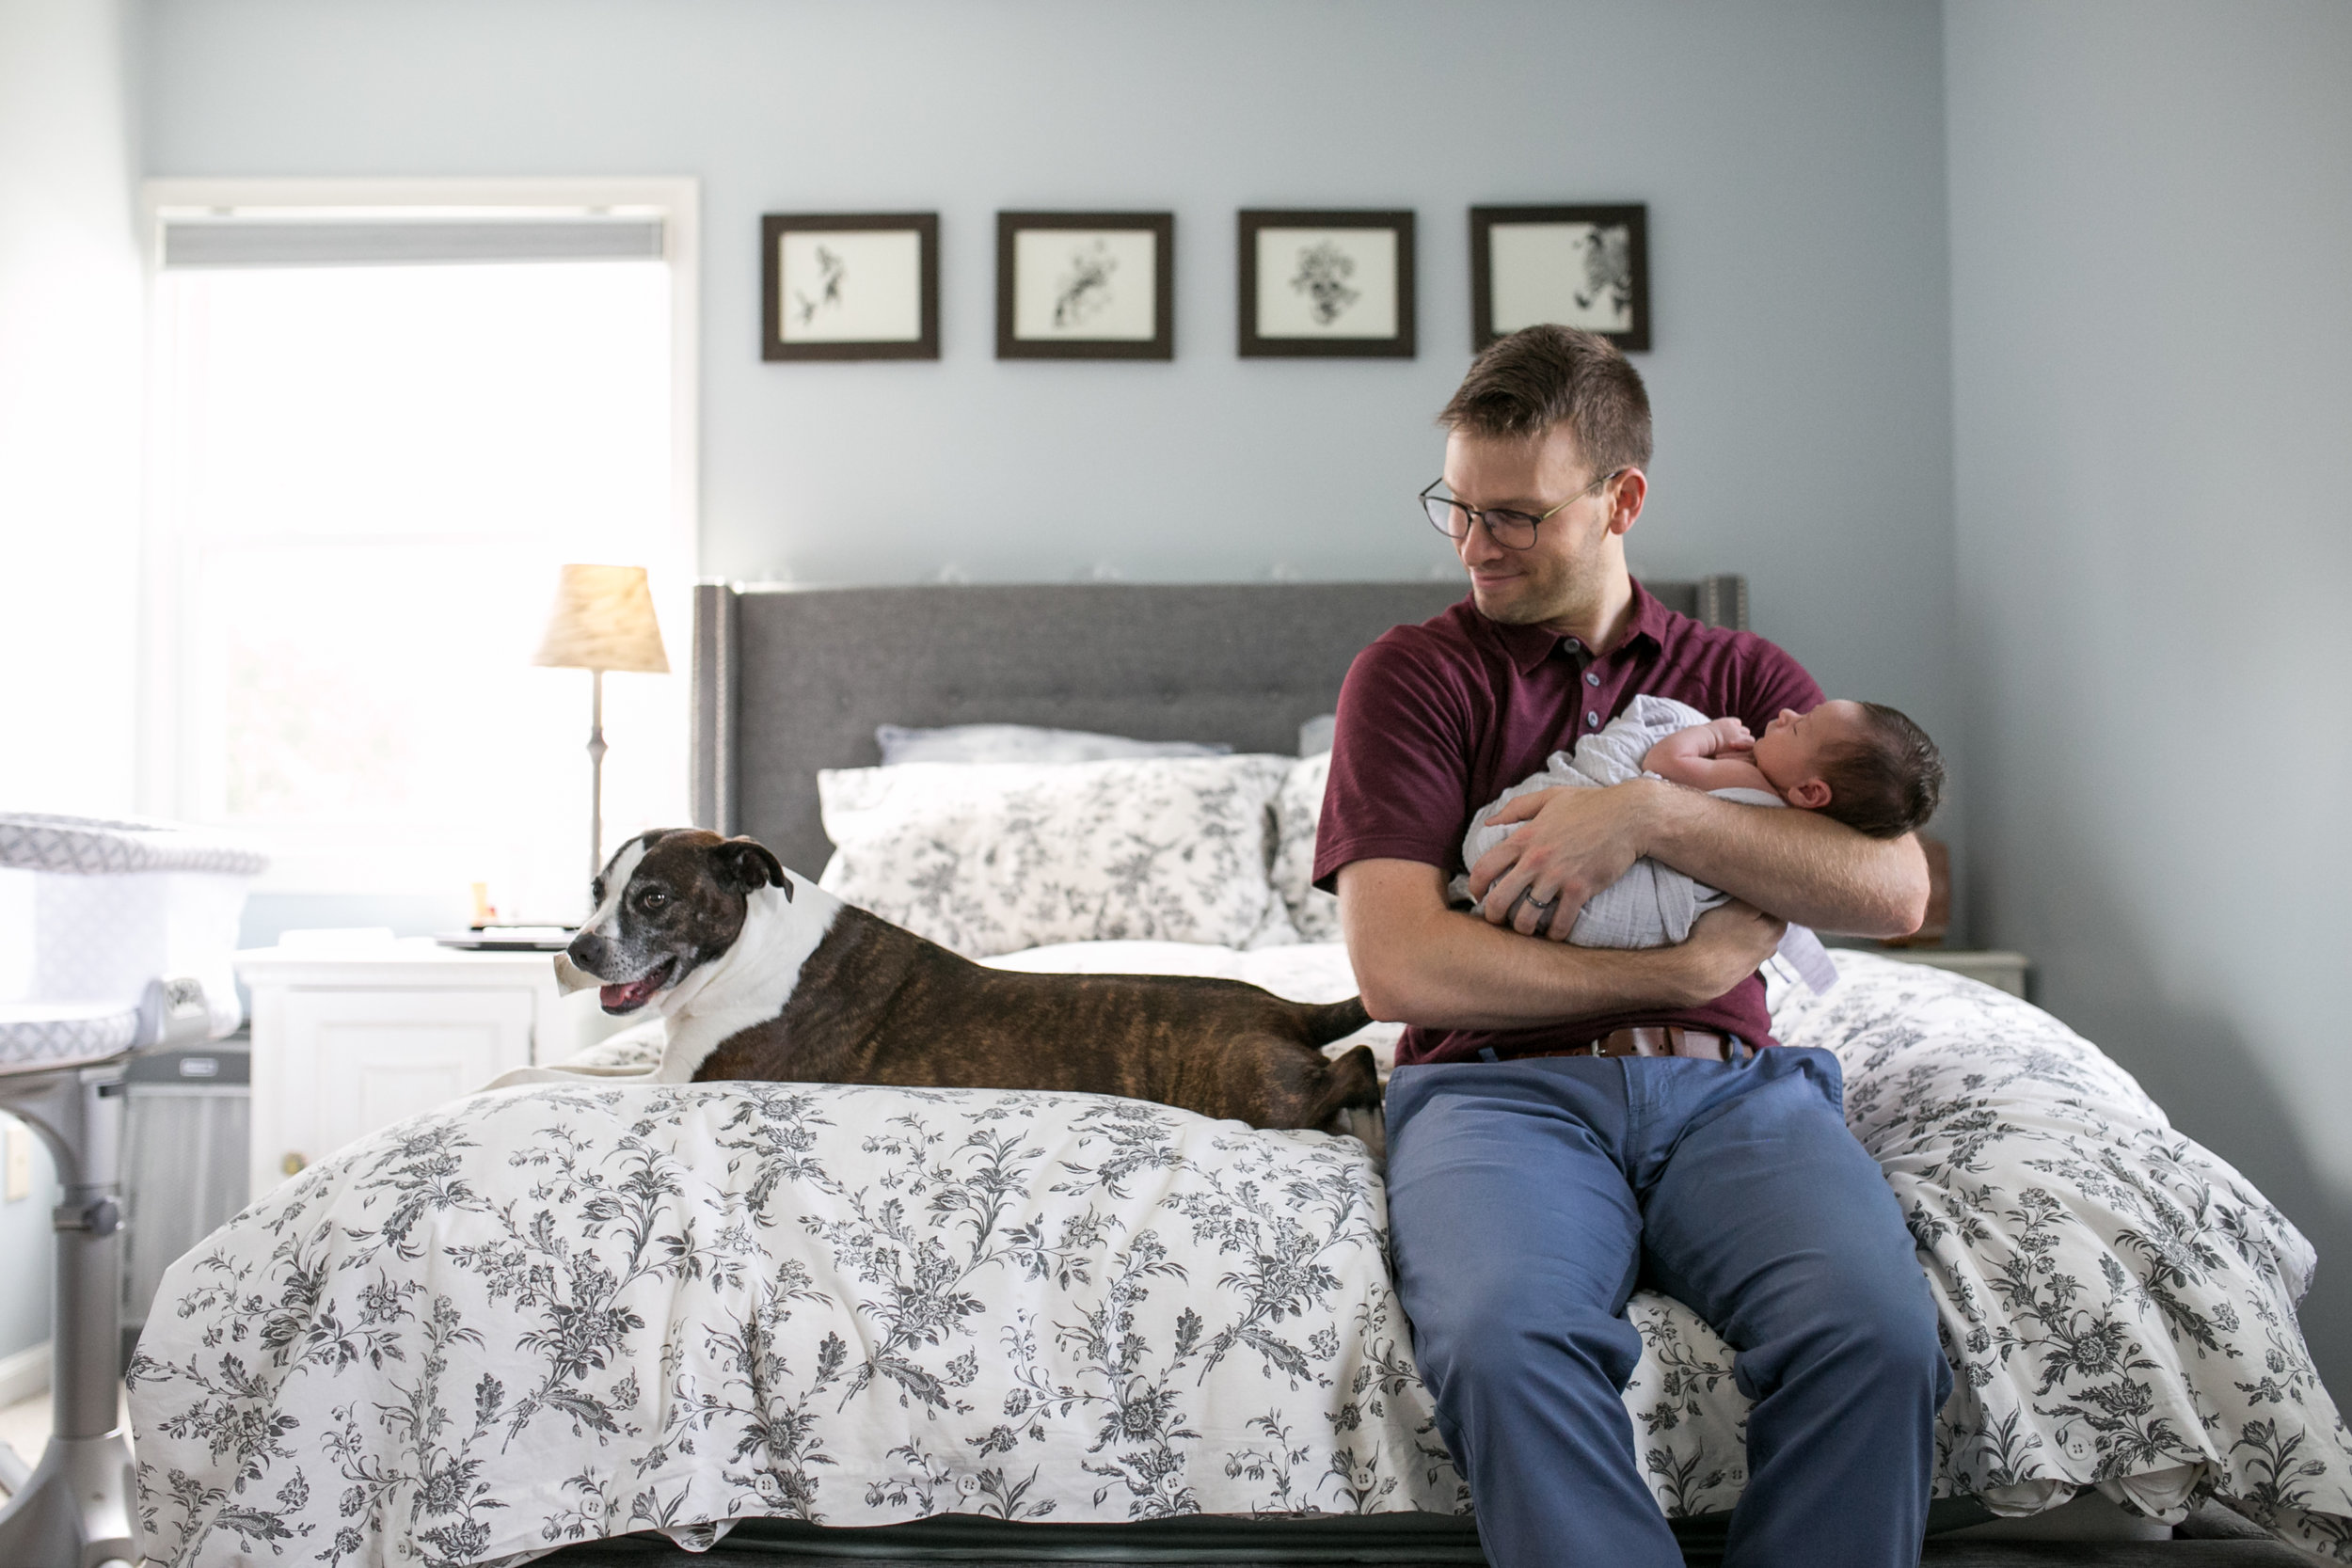 dad, baby and dog photo